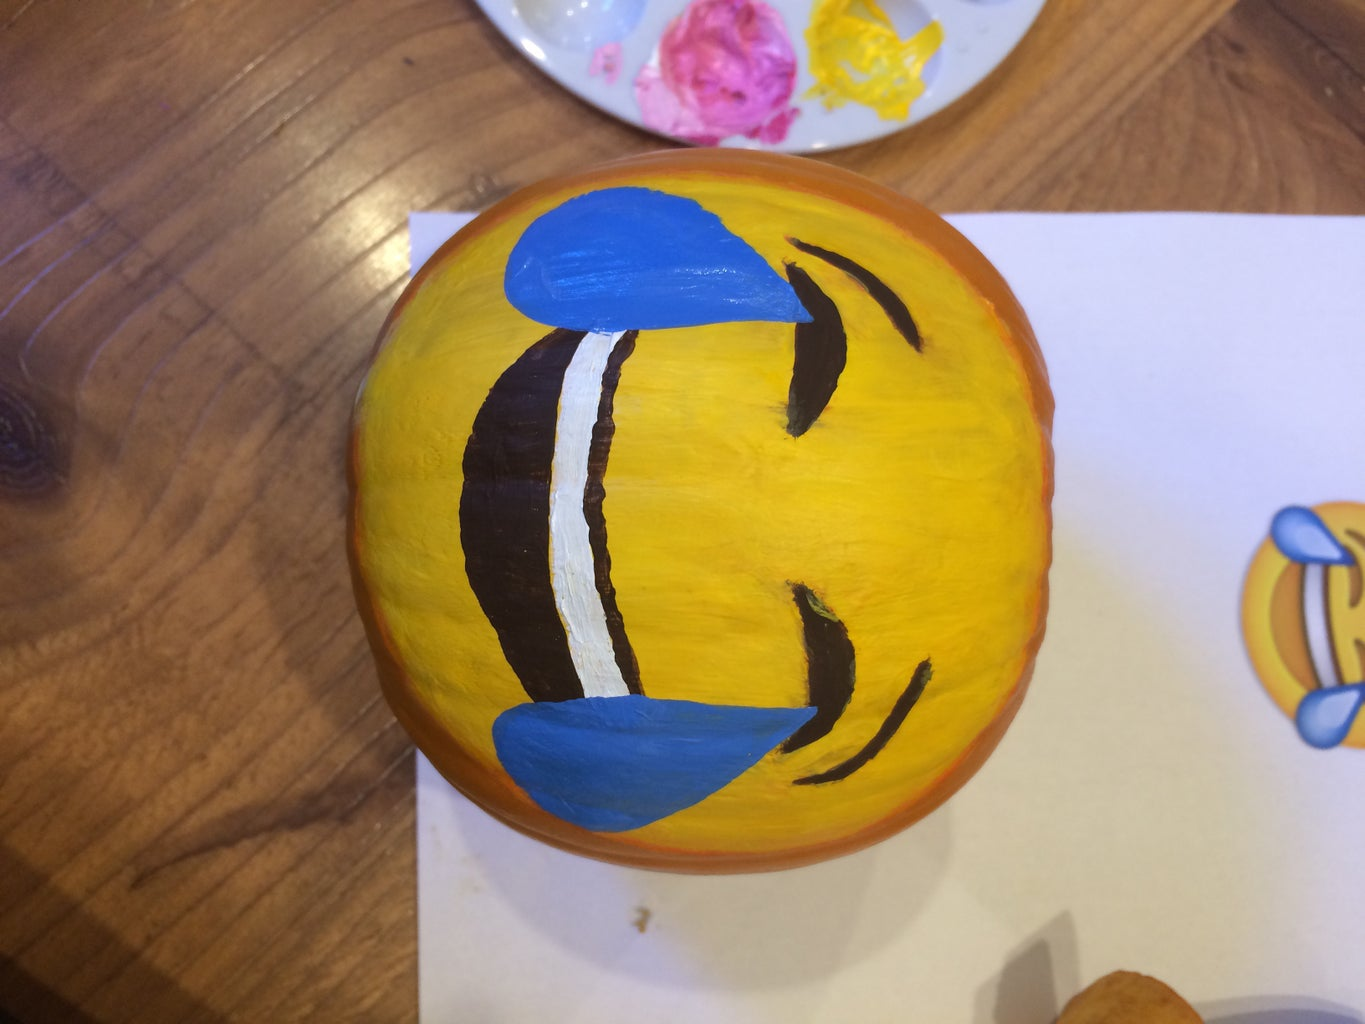 Painting the Crying Laughing Emoji